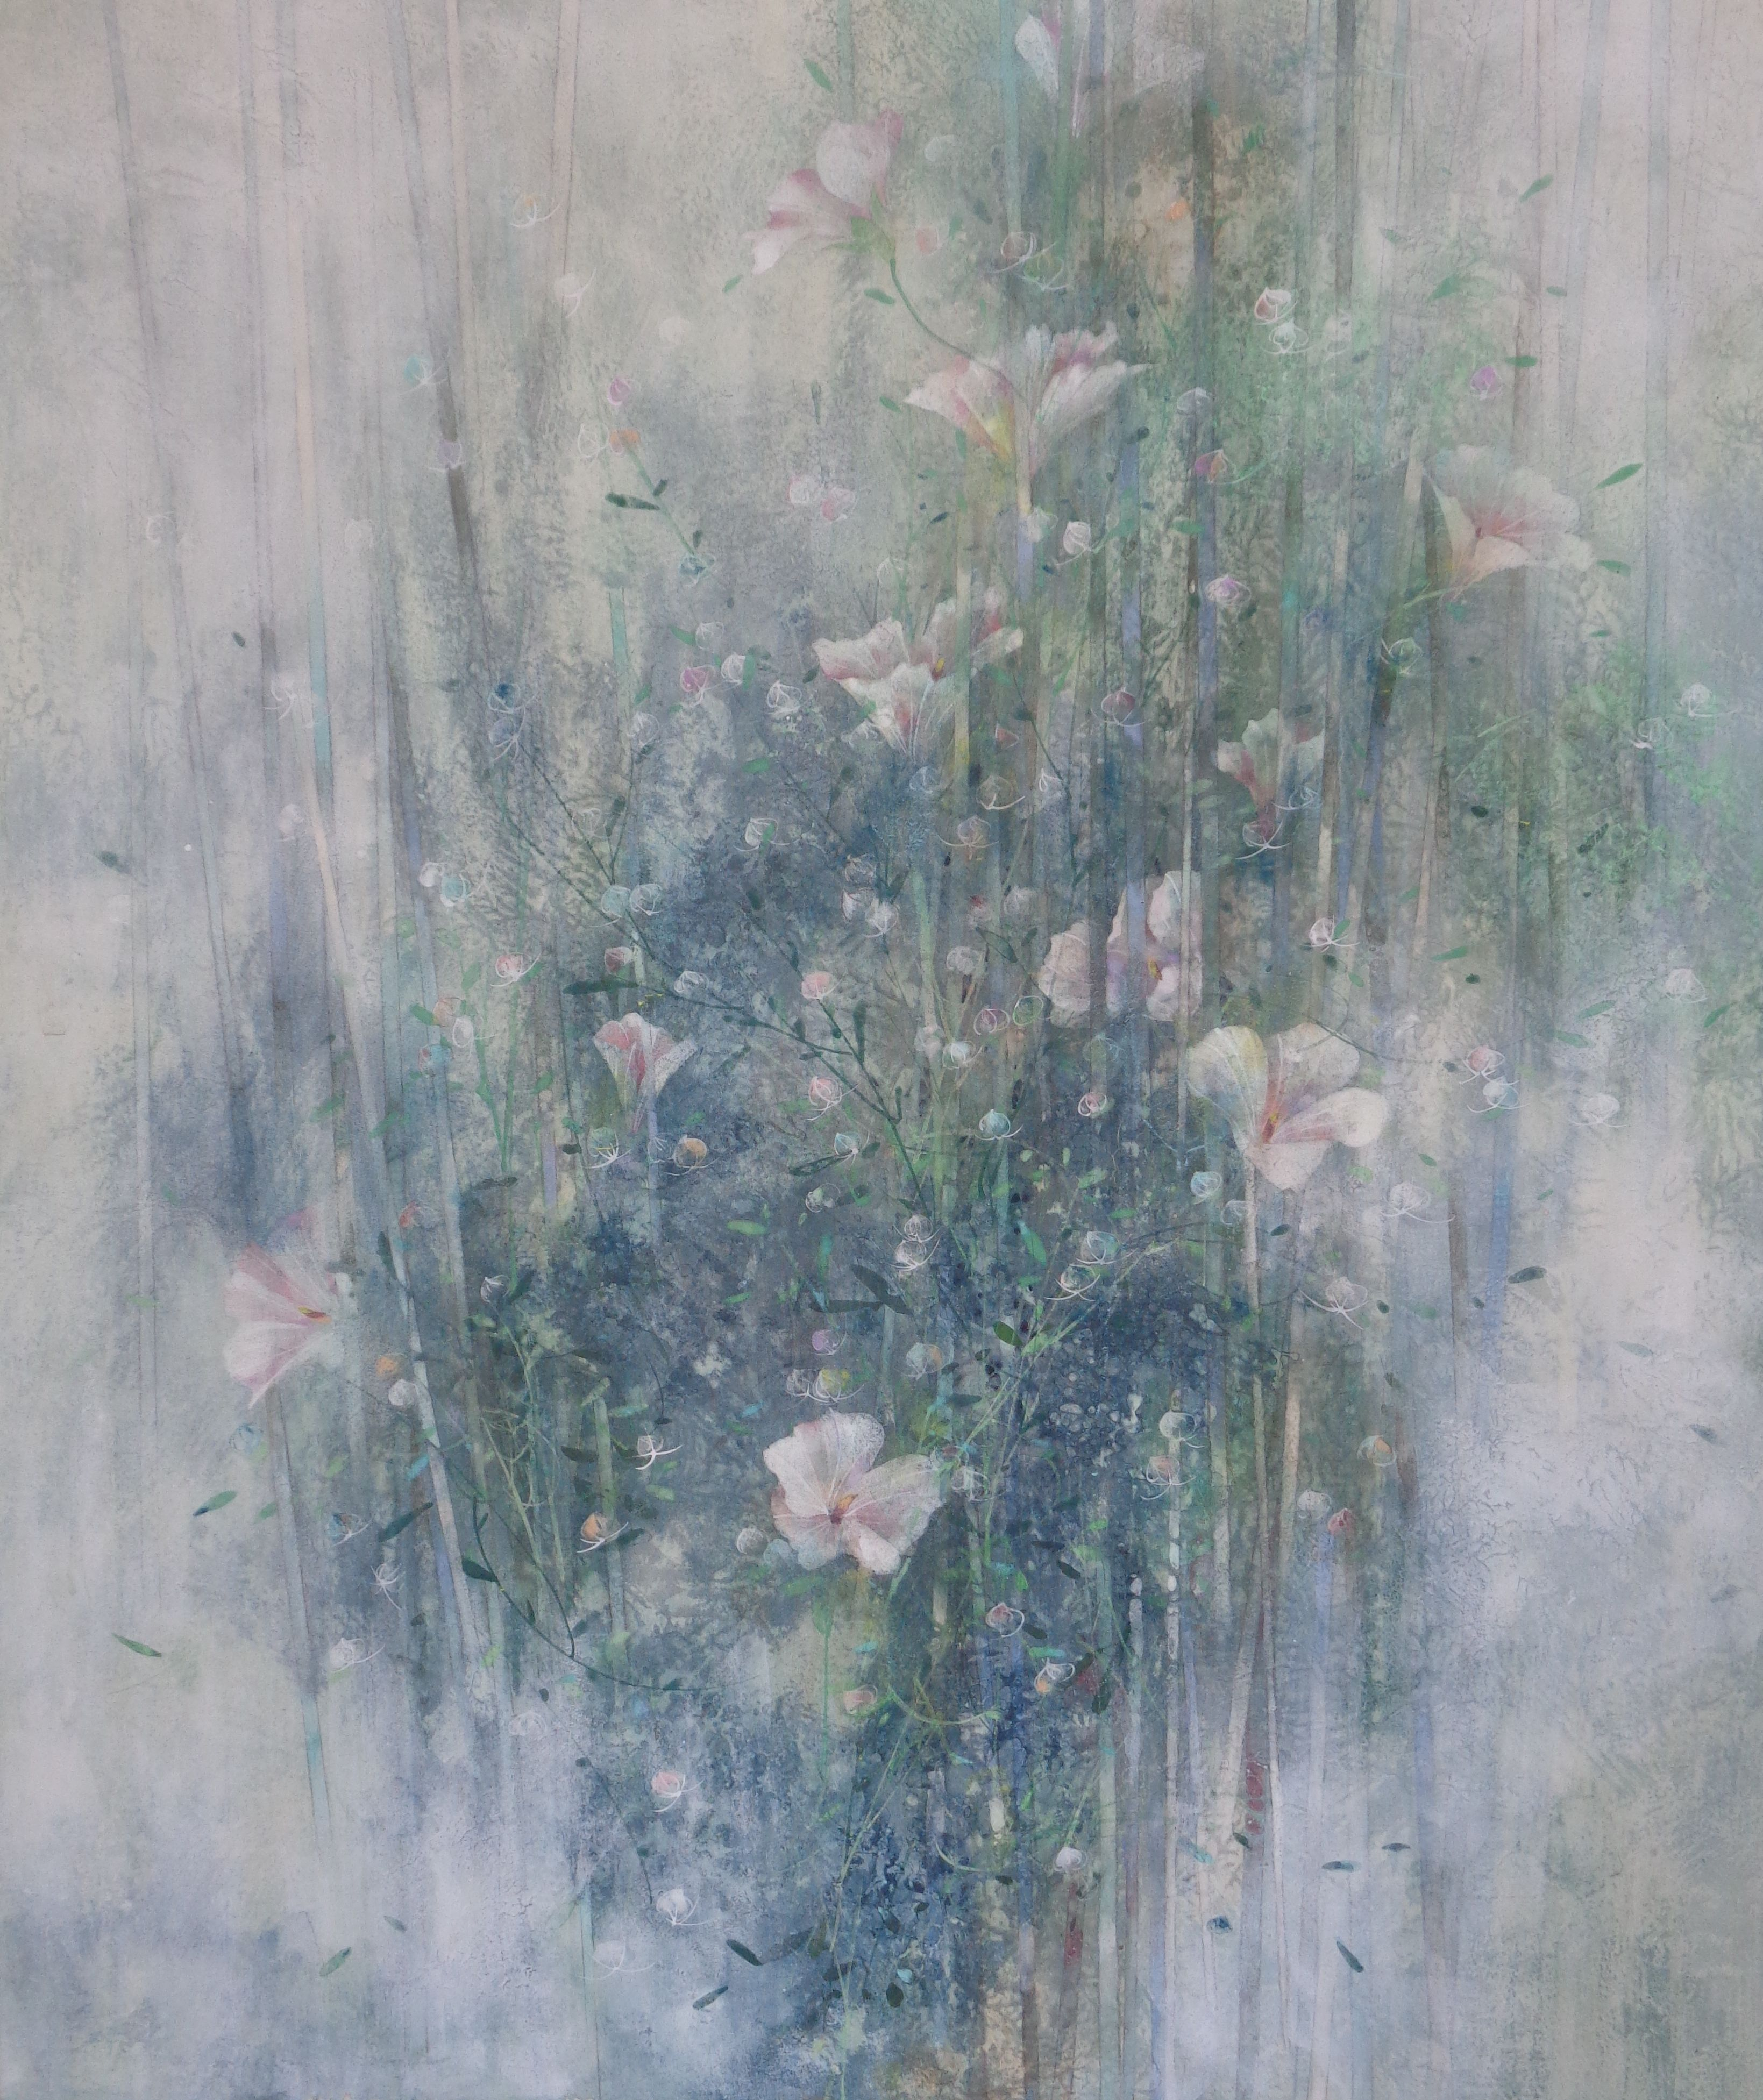 Research - Chen Yiching - Contemporary painting